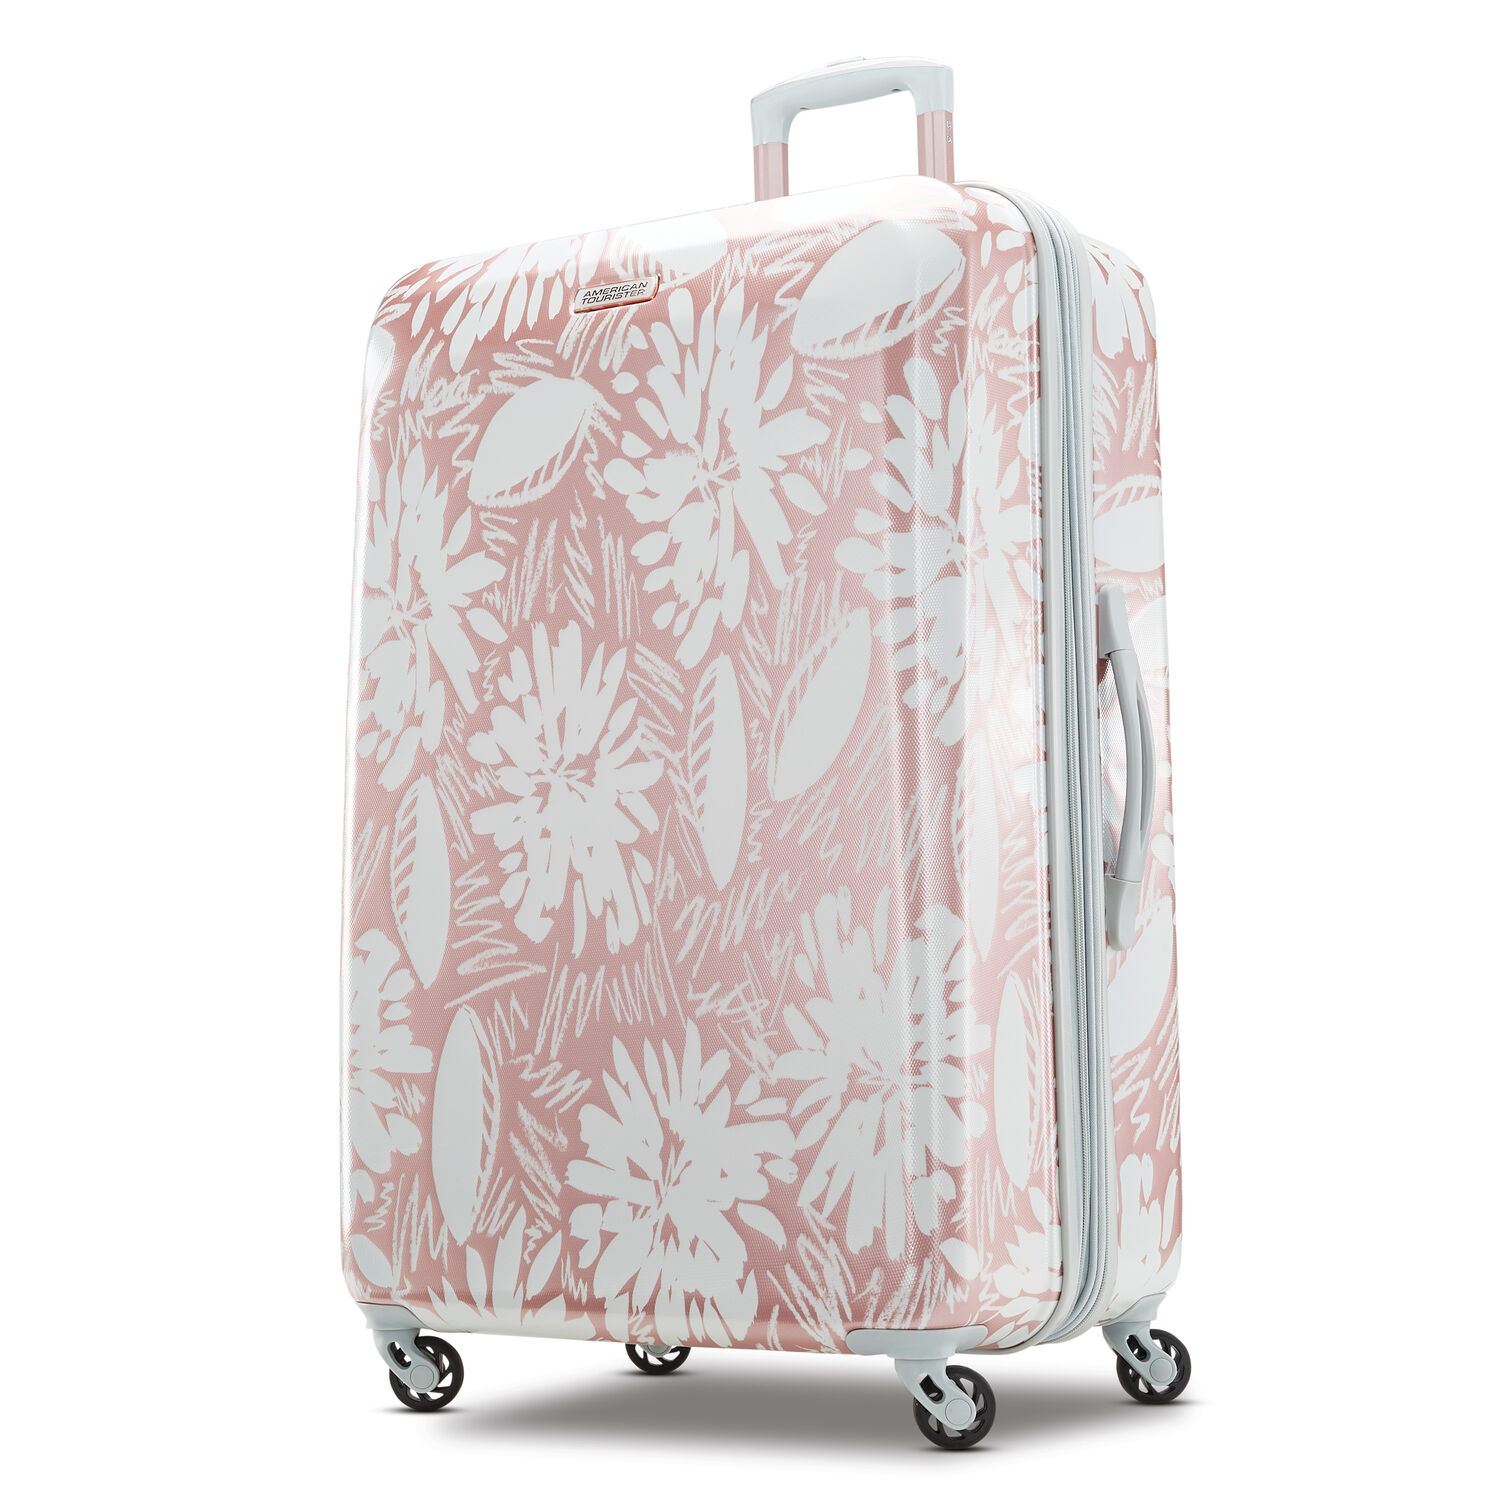 "American Tourister Moonlight 28"" Spinner in the color Ascending Gardens Rose Gold."